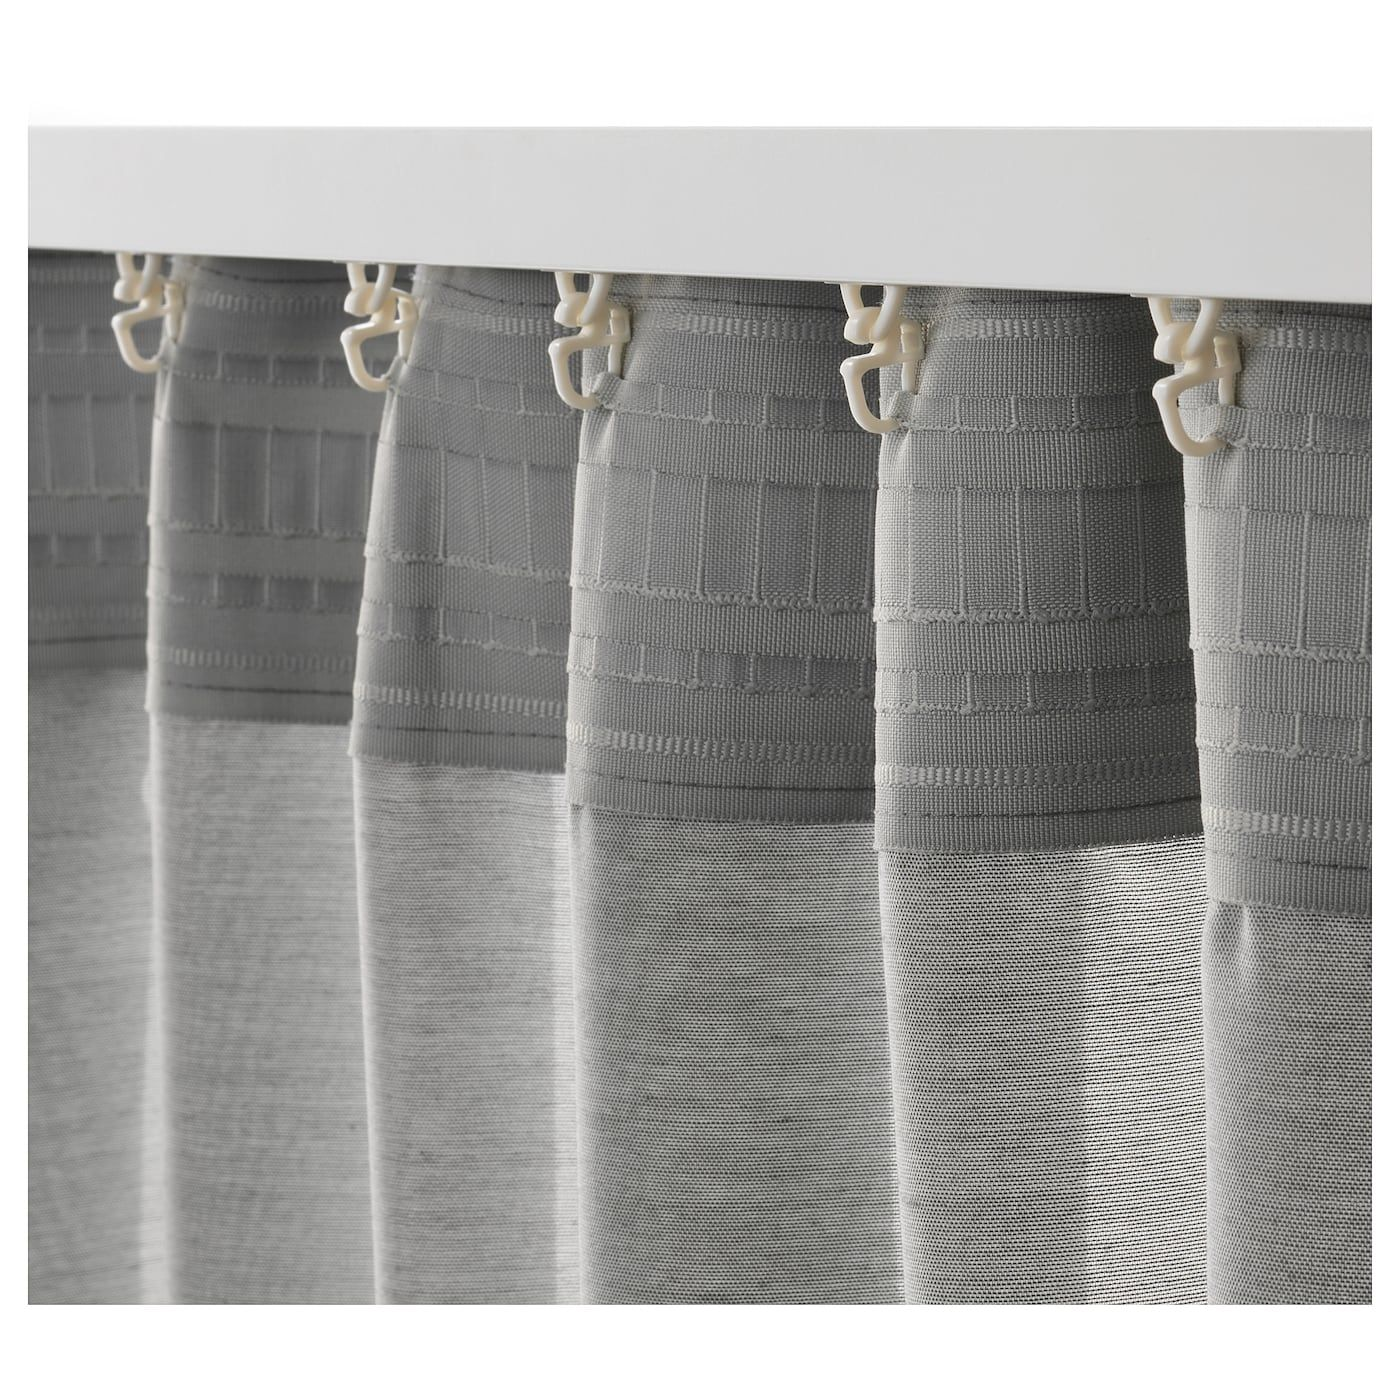 Hilja 2 Gardinenschals Grau 145x300 Cm Ikea Österreich Curtains Grey Linen Curtains Wave Curtains - Ikea Vorhang Hilja